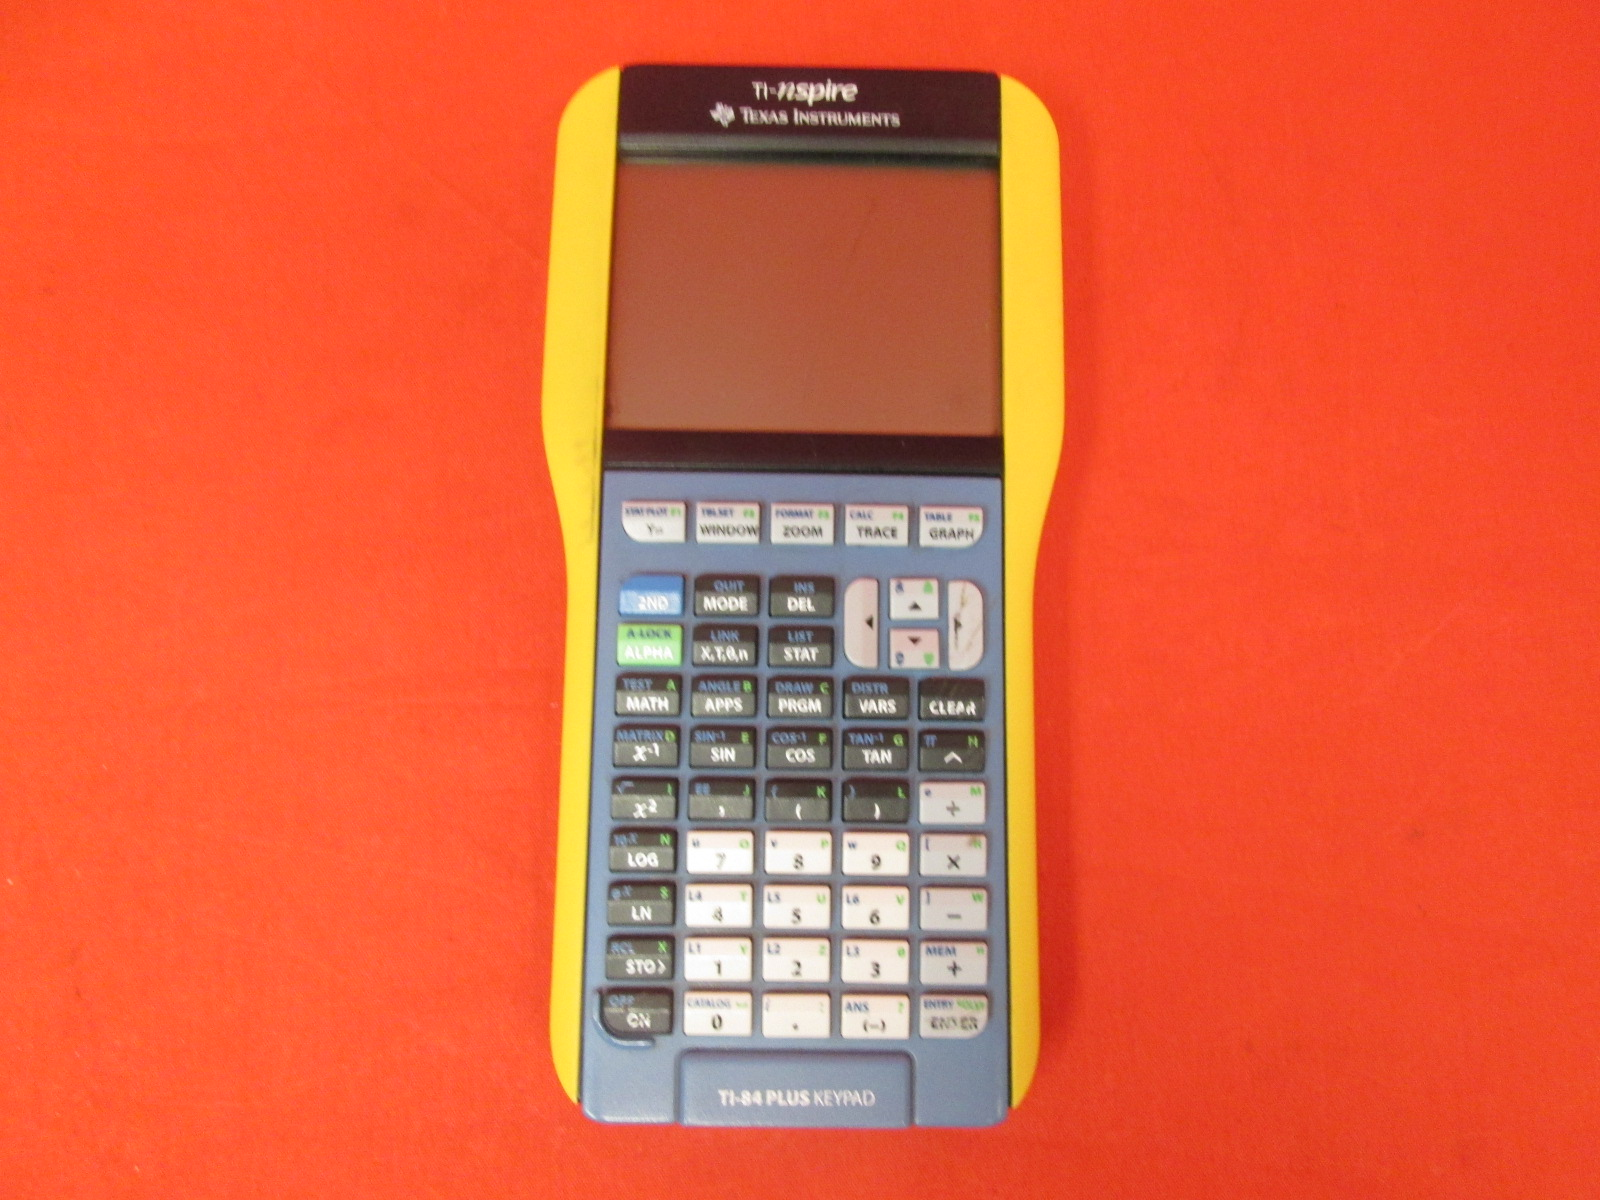 Texas Instruments Ti-Nspire With Touchpad Calculator